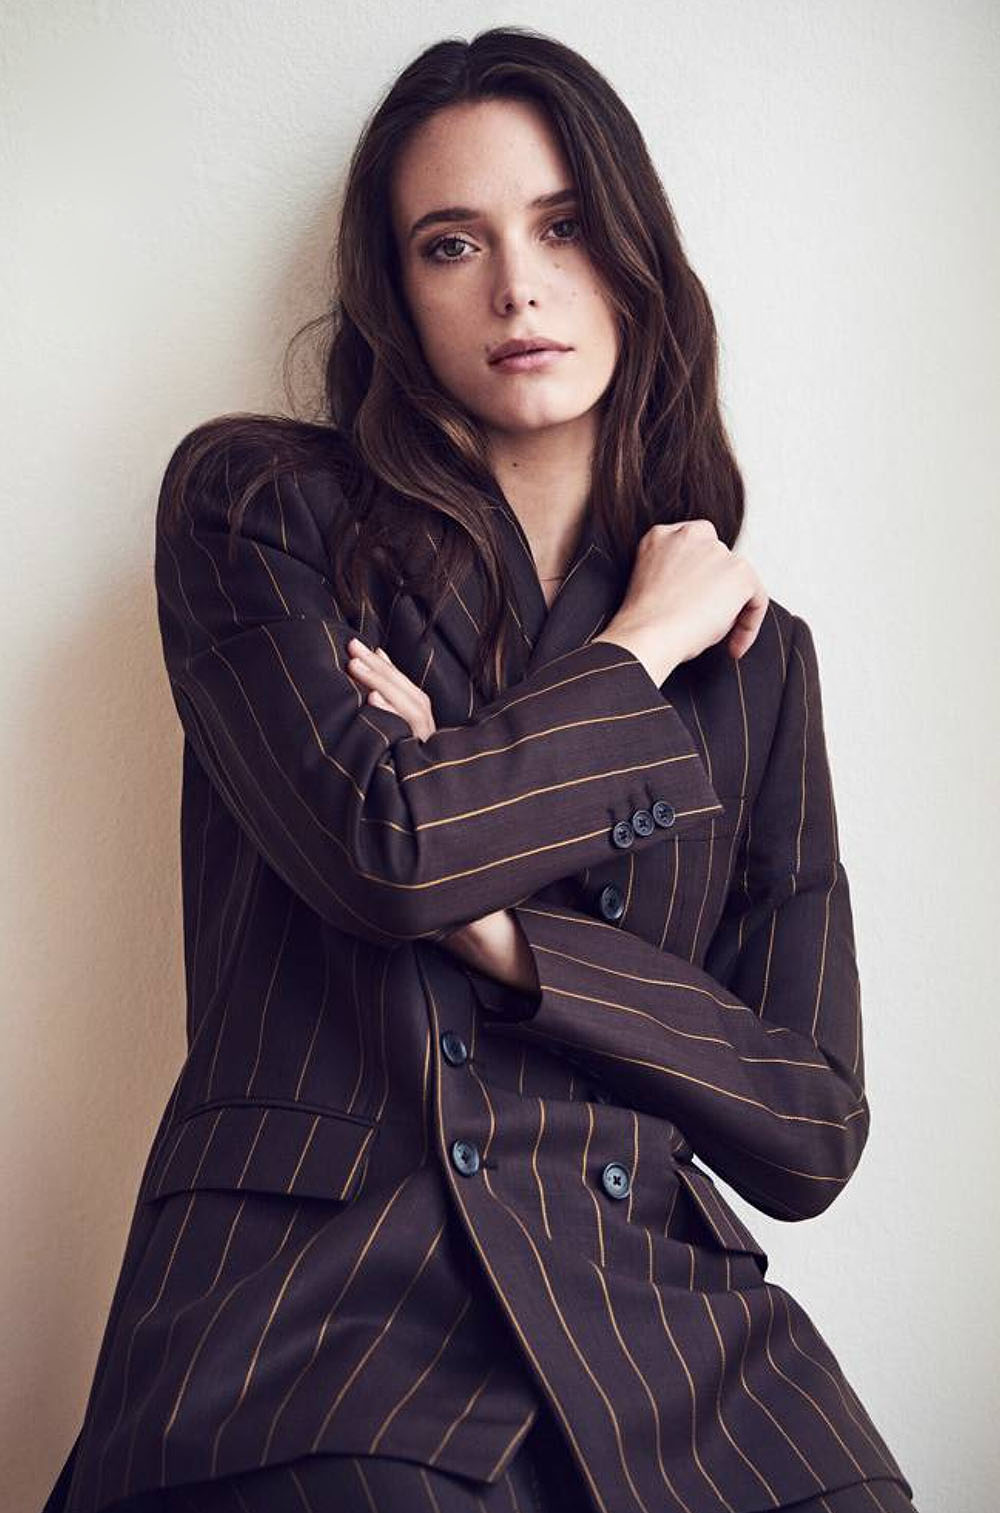 Stacy Martin covers Madame Figaro October 2nd, 2020 by Matthew Brookes